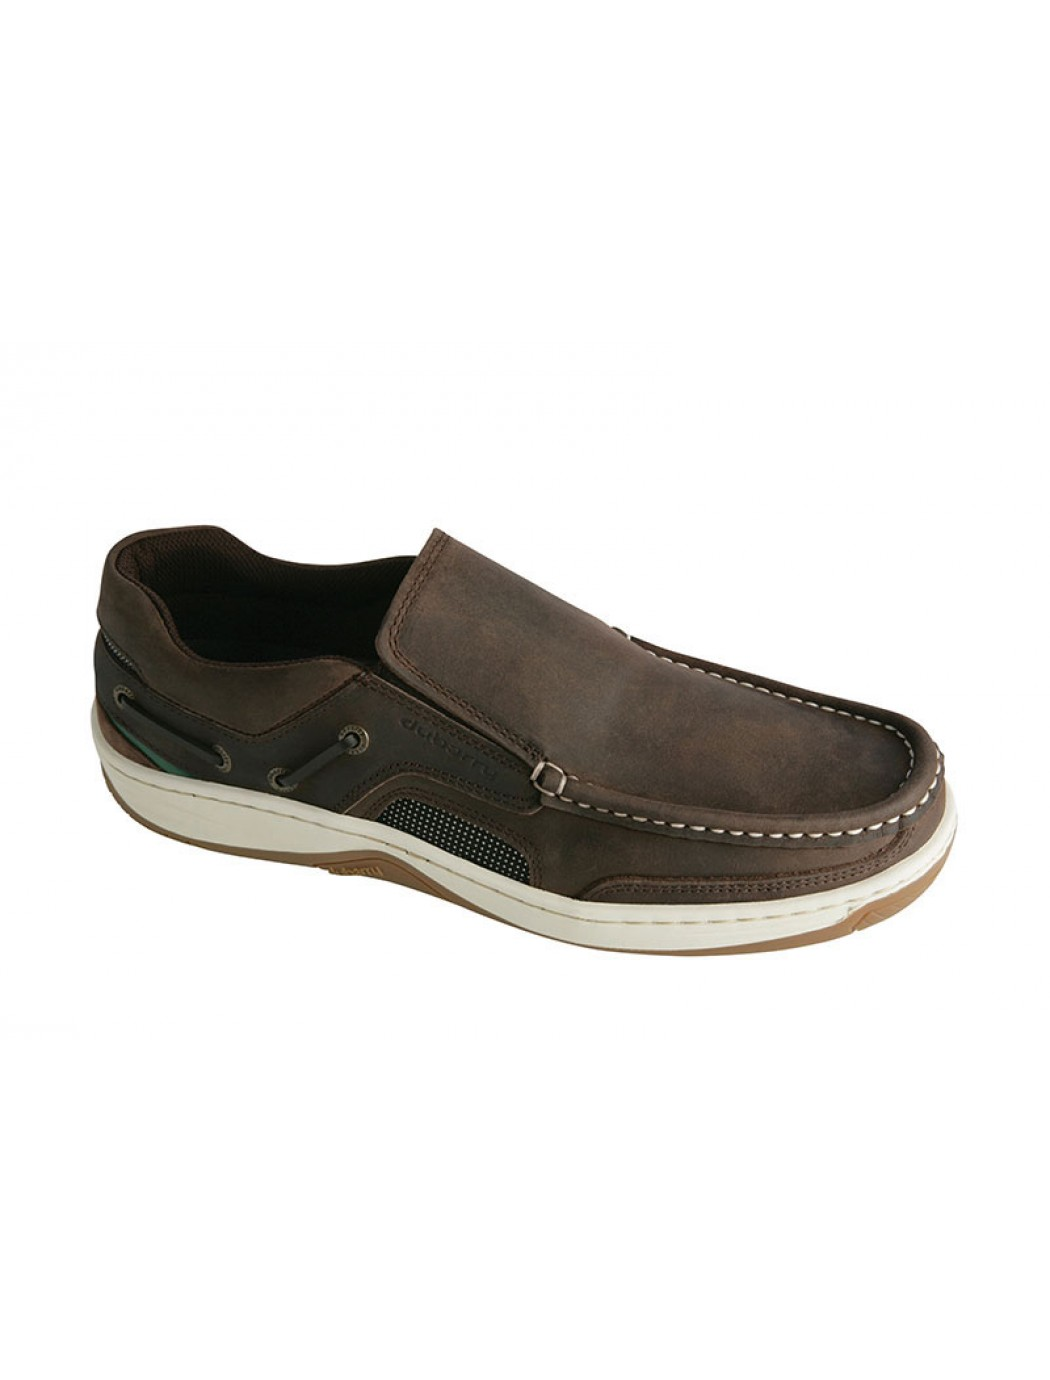 yacht-mens-decks-donkey-brown